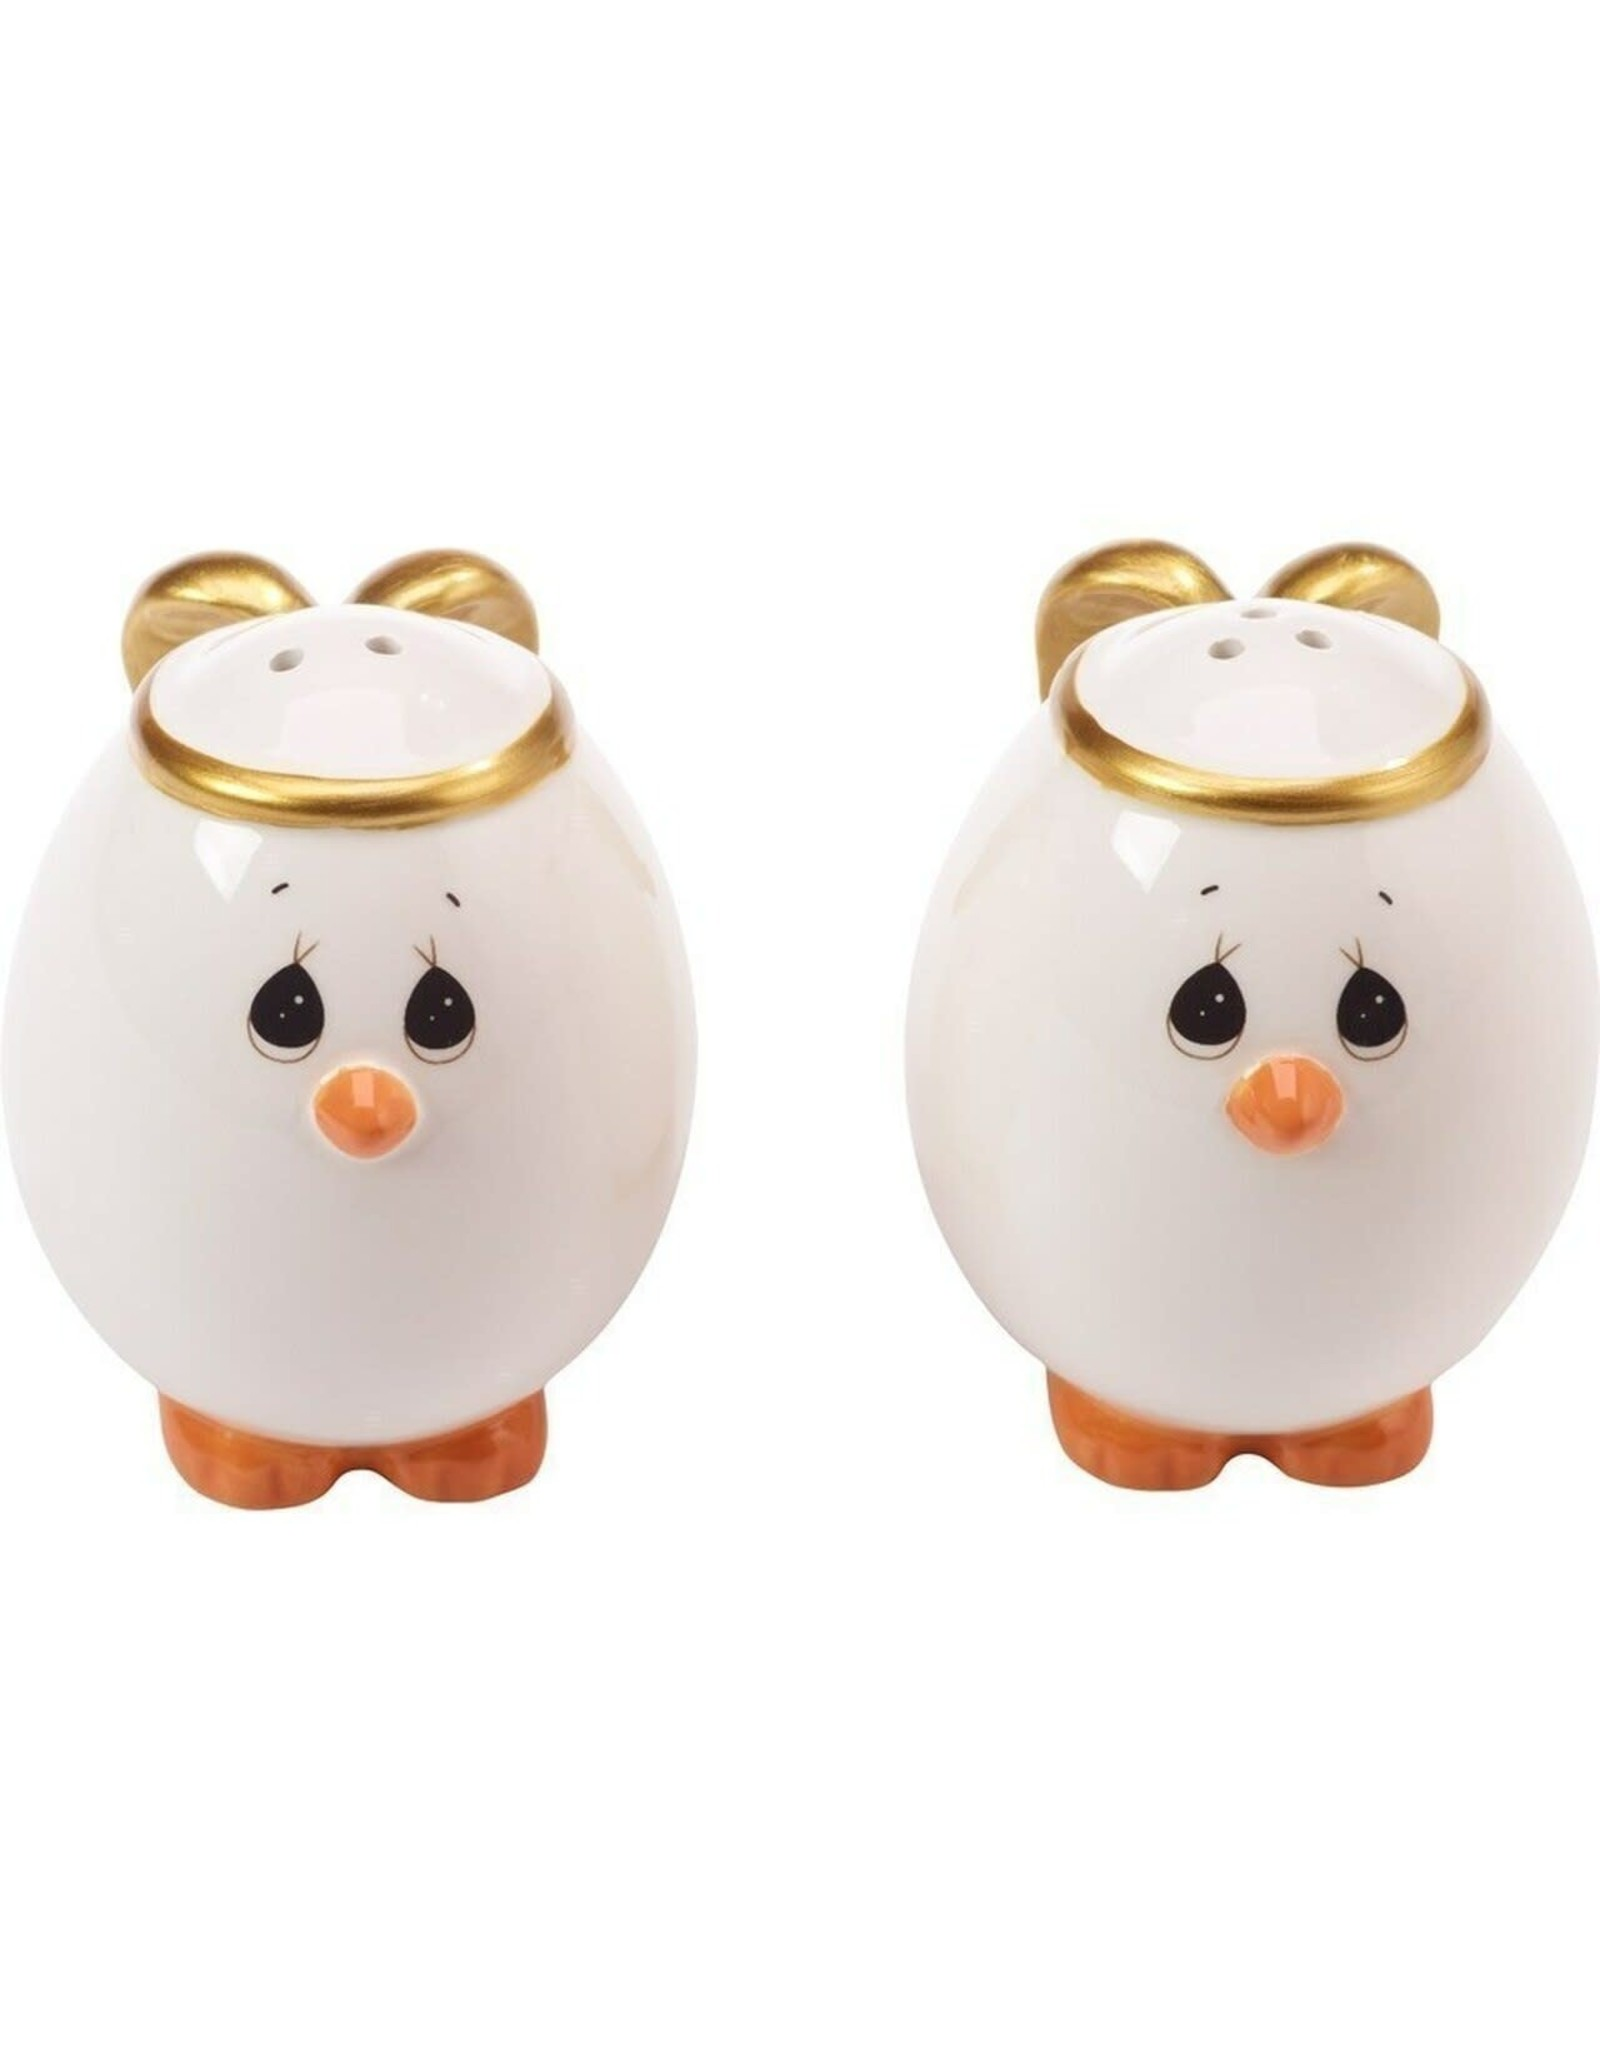 Precious Moments Angeled Eggs Salt & Pepper Shakers